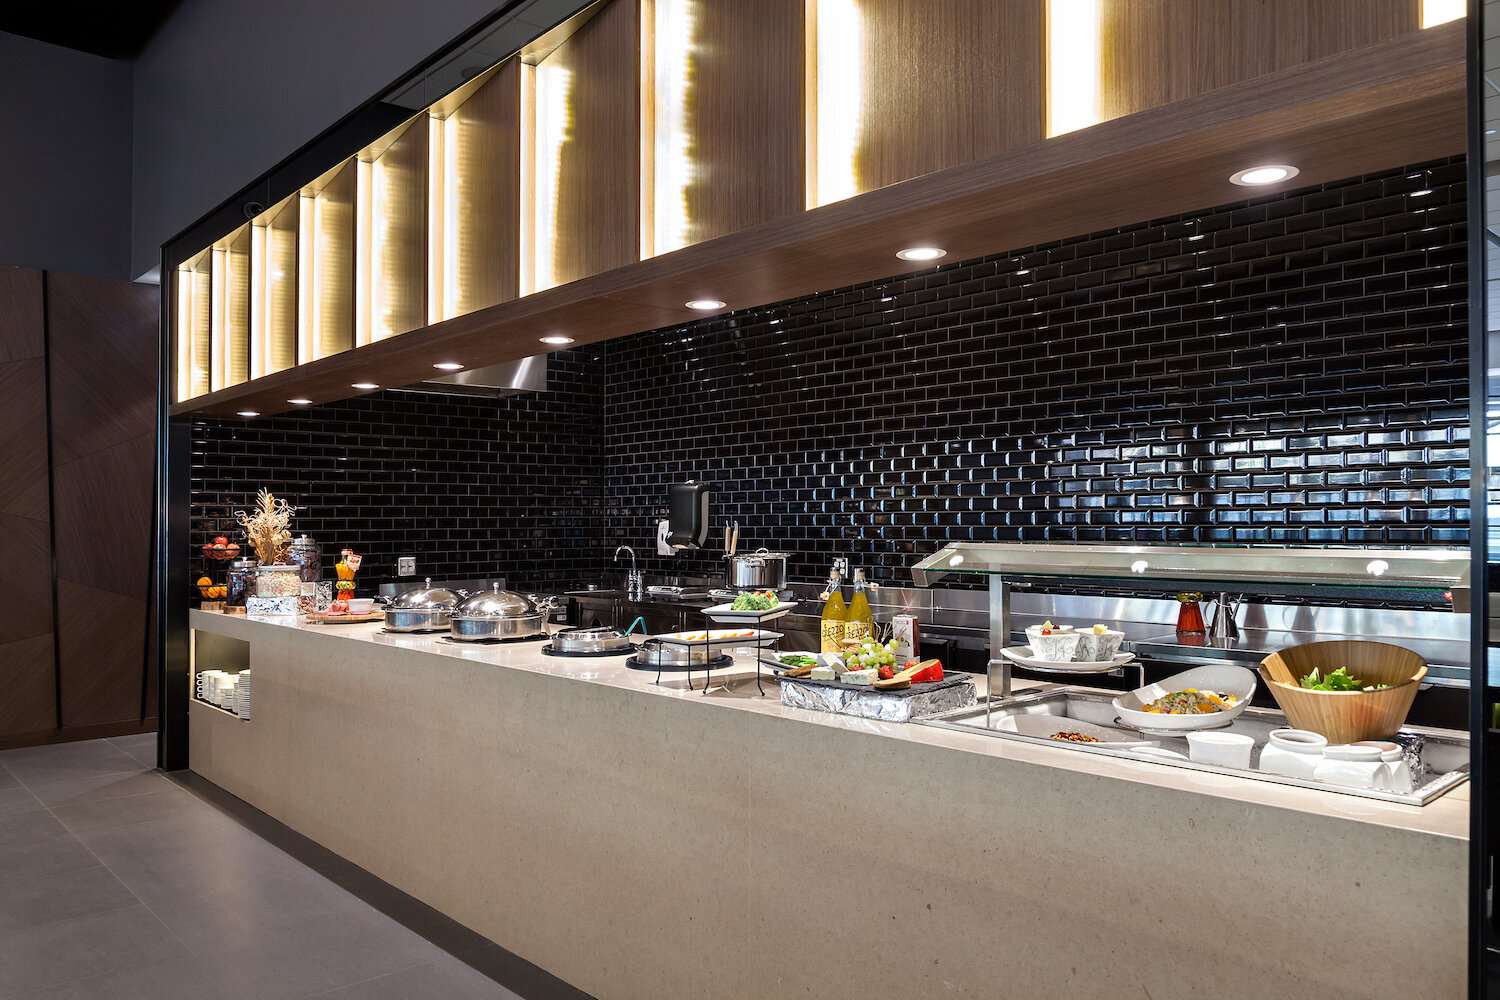 Healthy and tasty buffet to refuel during your travels.